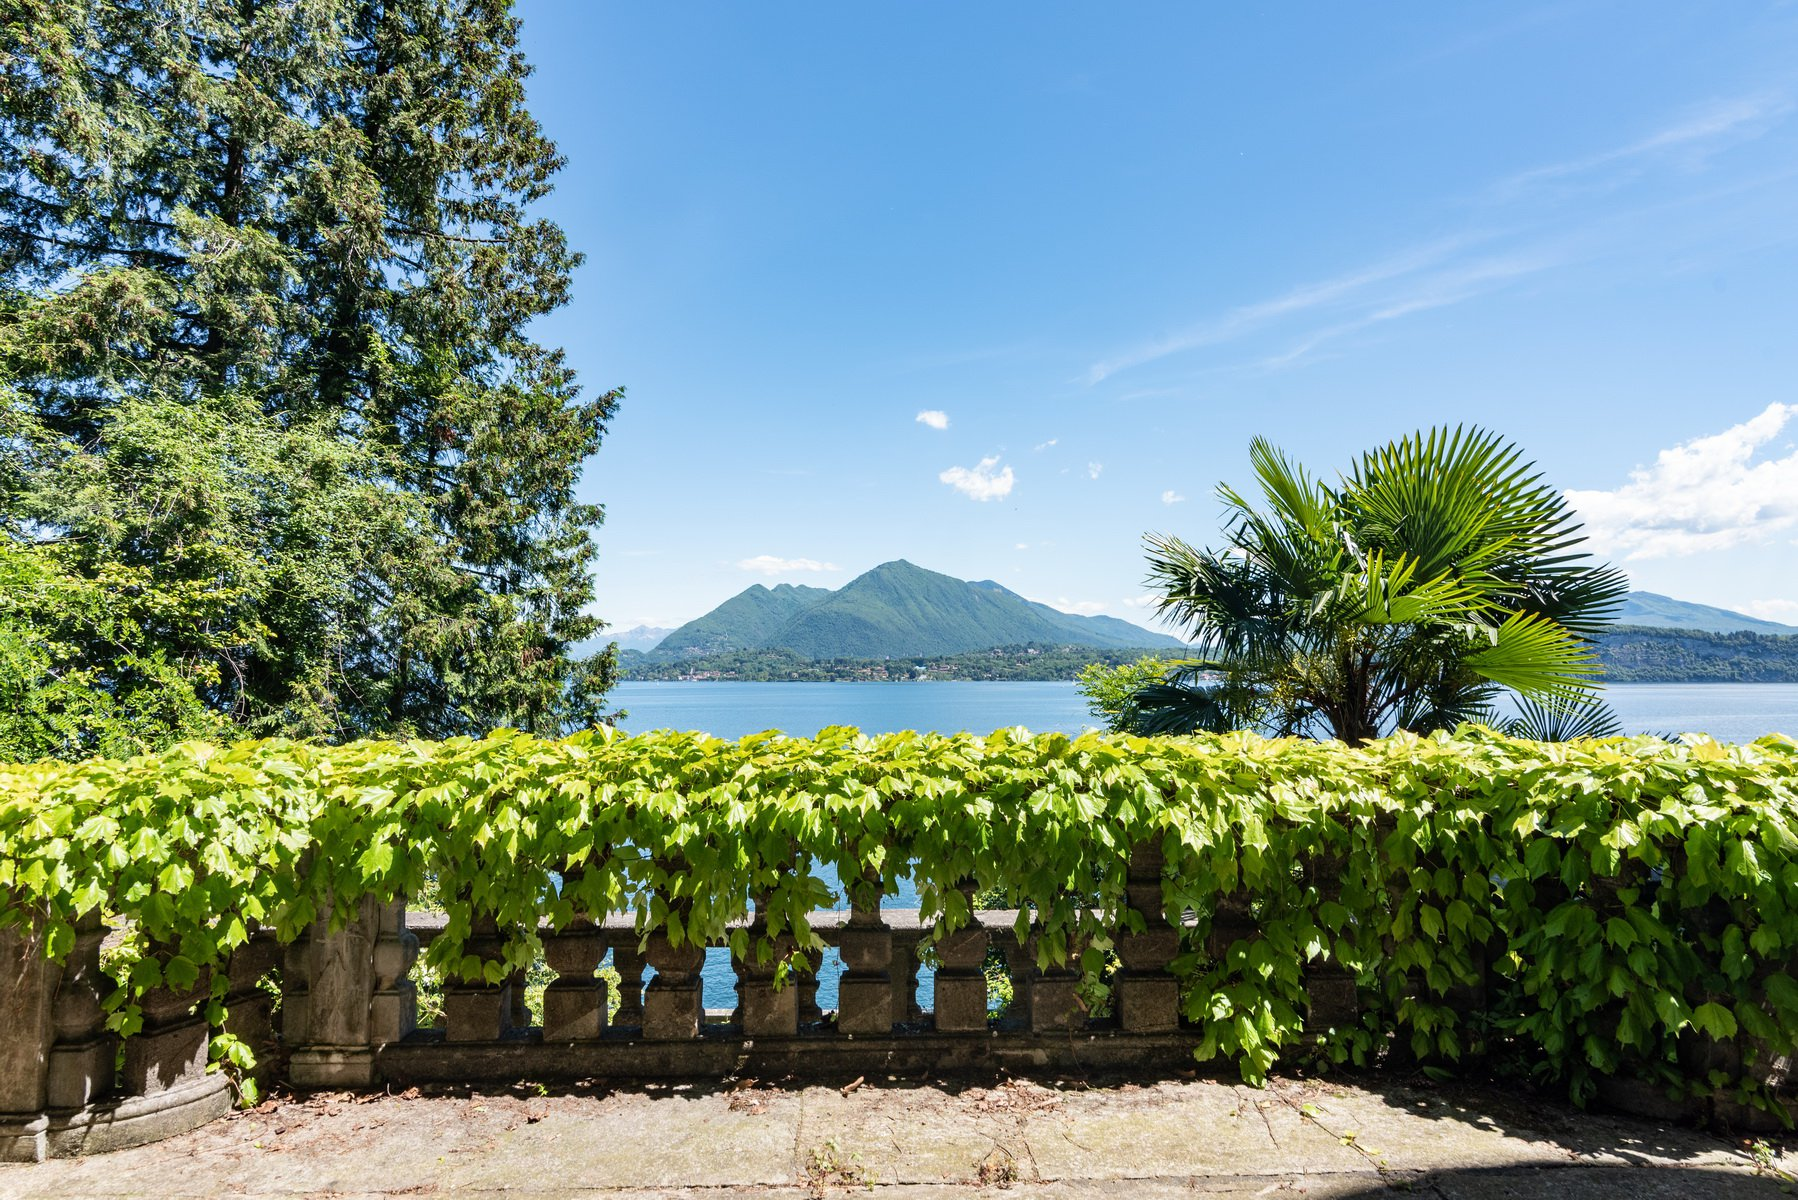 Castle for sale in Stresa on Lake Maggiore - lake view terrace